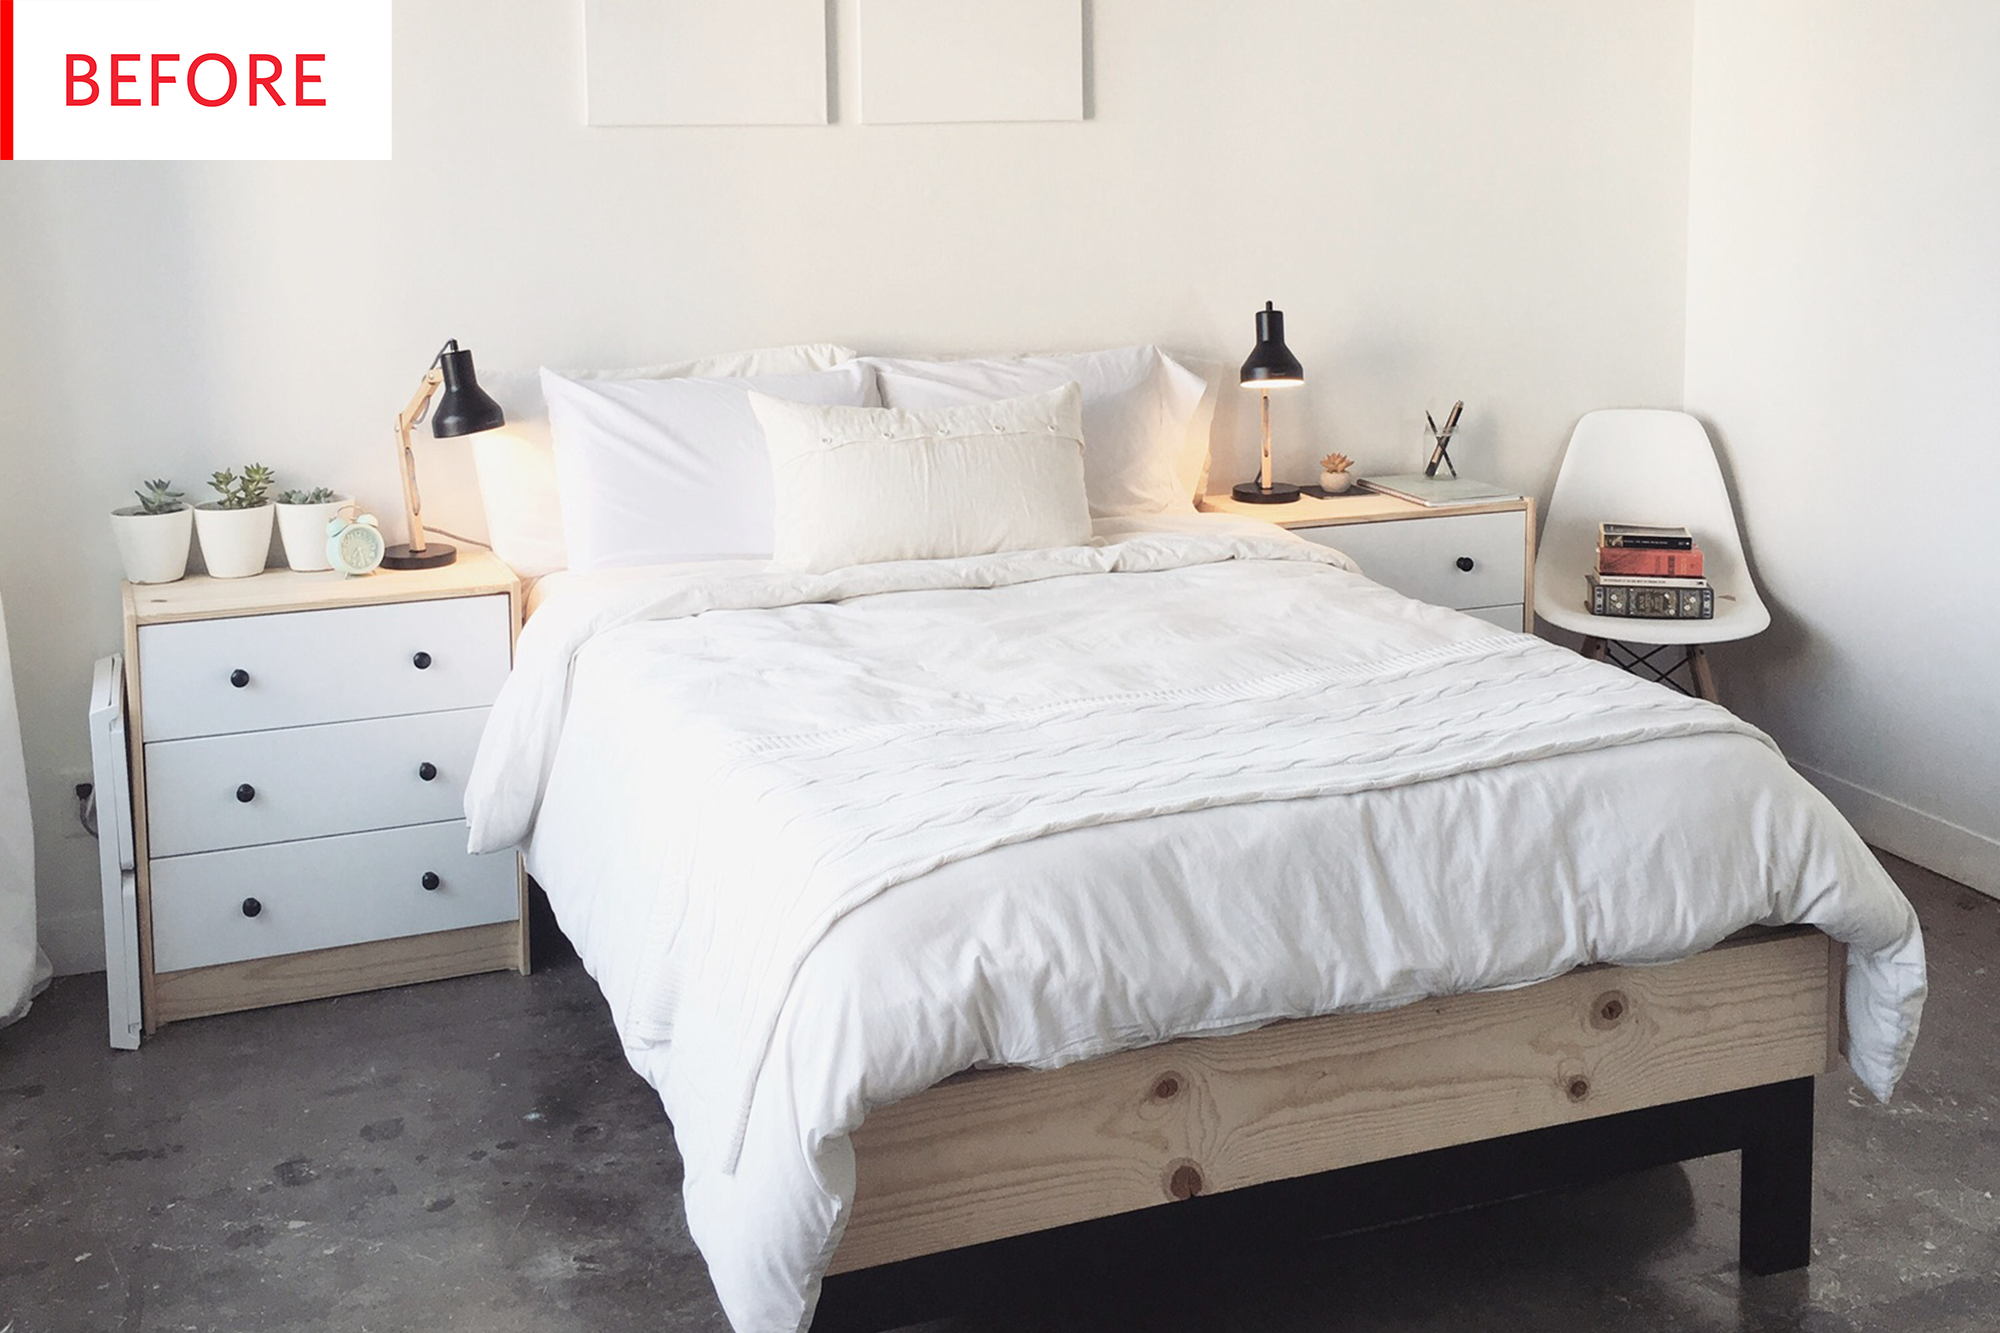 IKEA Storage Bed Hack - Before After | Apartment Therapy